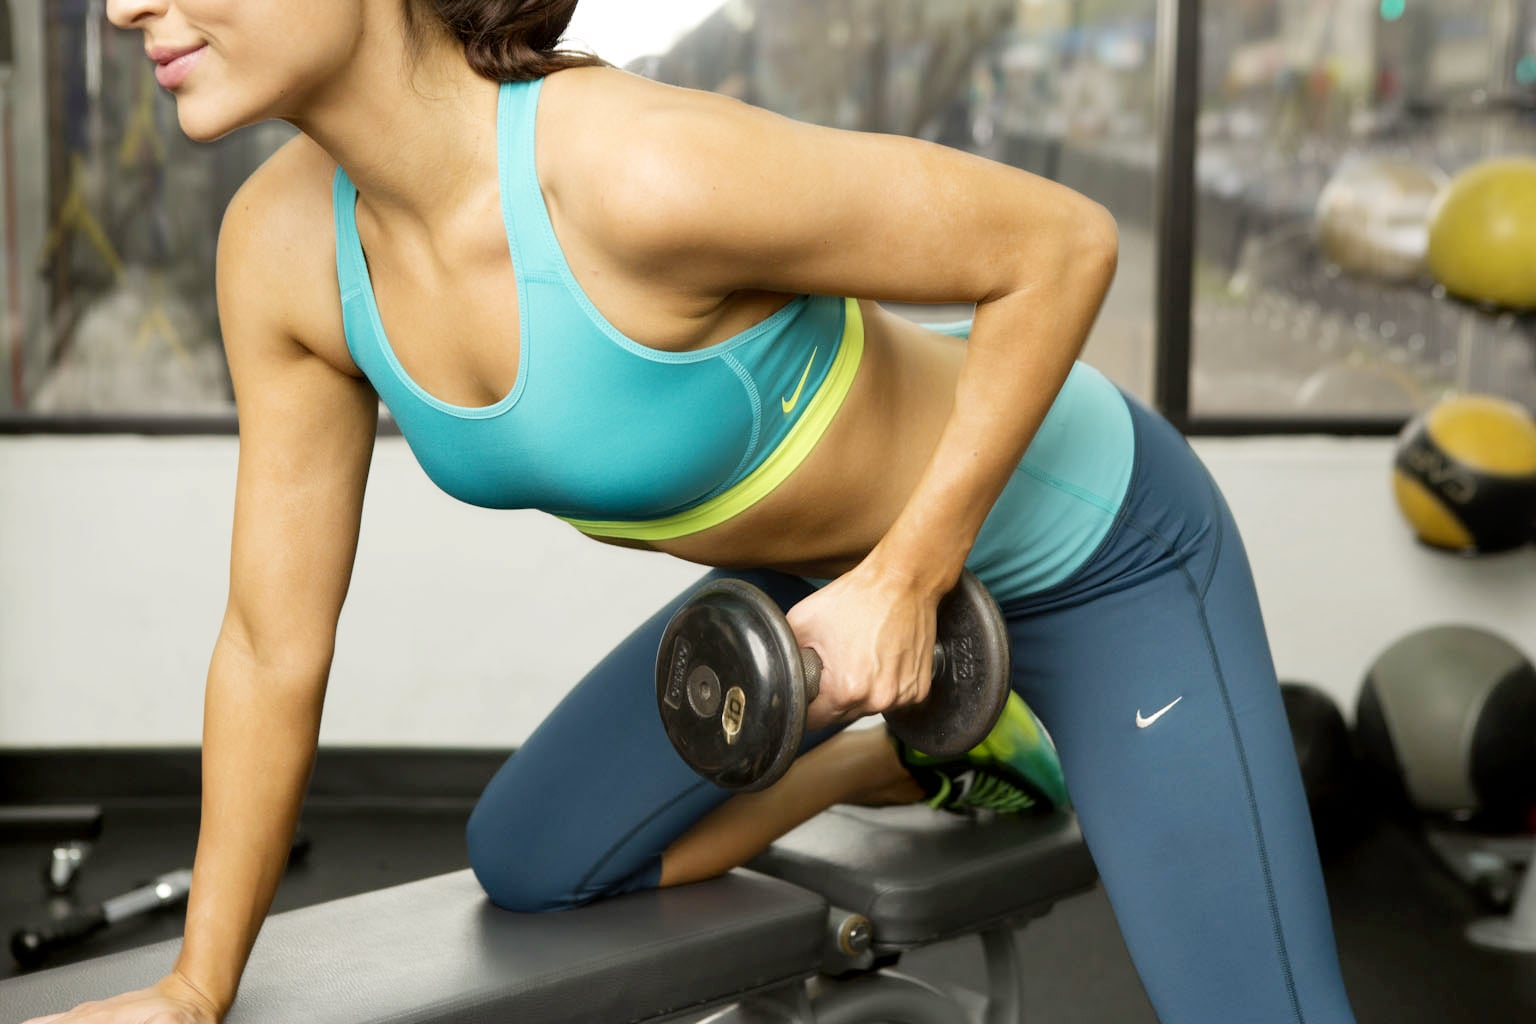 Regain your shape and fitness through regular routines